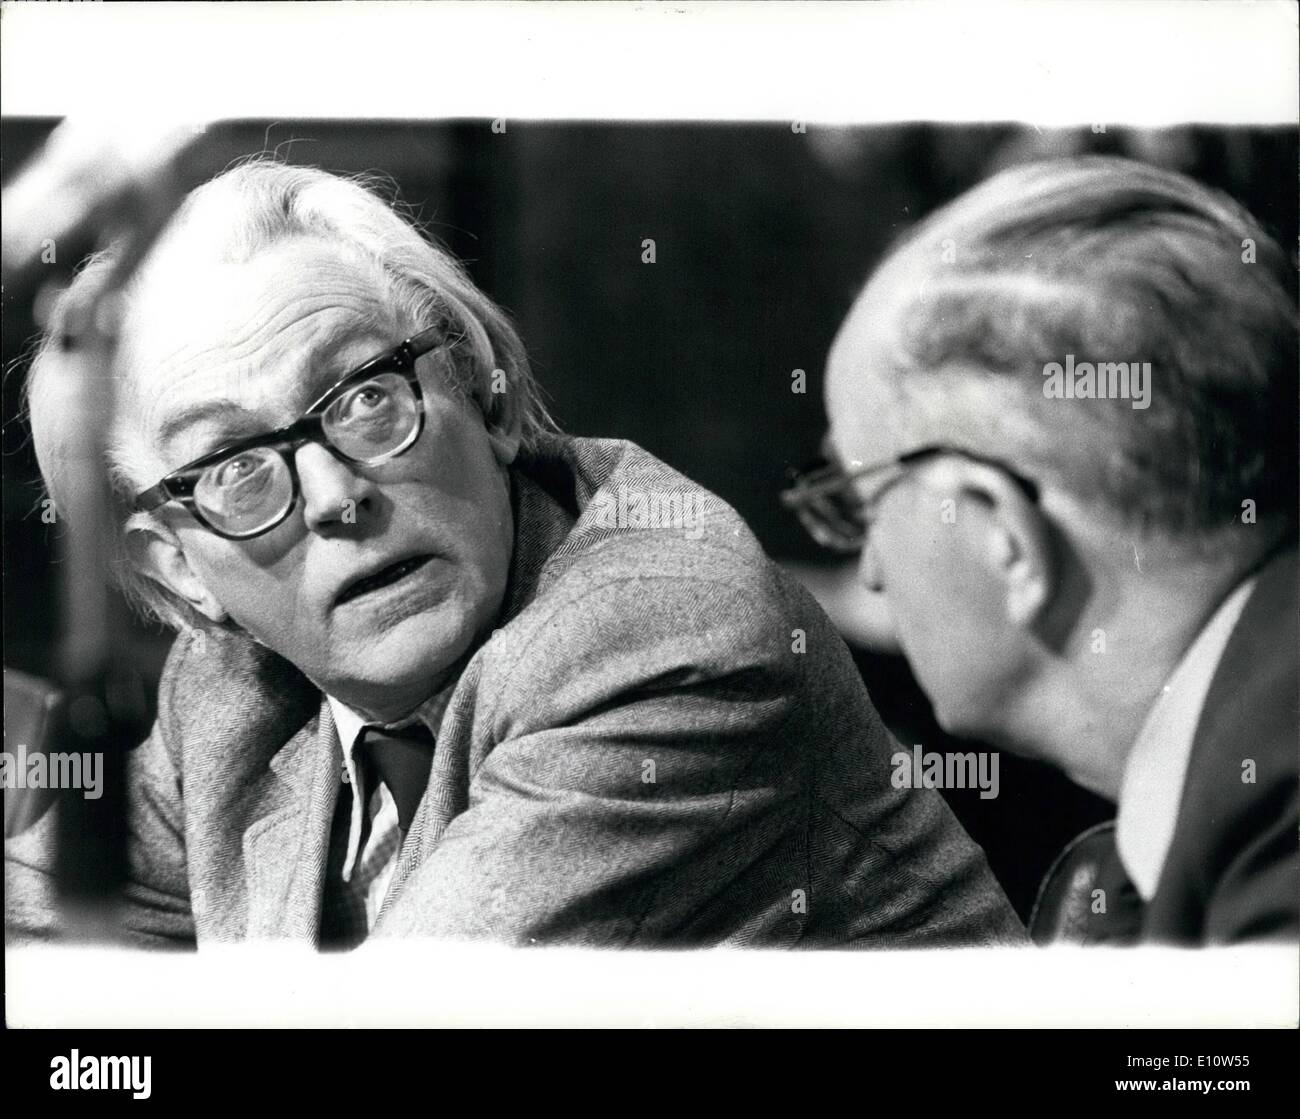 Apr. 04, 1974 - Mr. Foot meets Mr. Scanlon.: The Employment Secretary, Mr. Michael Foot yesterday followed his £10 Stock Photo